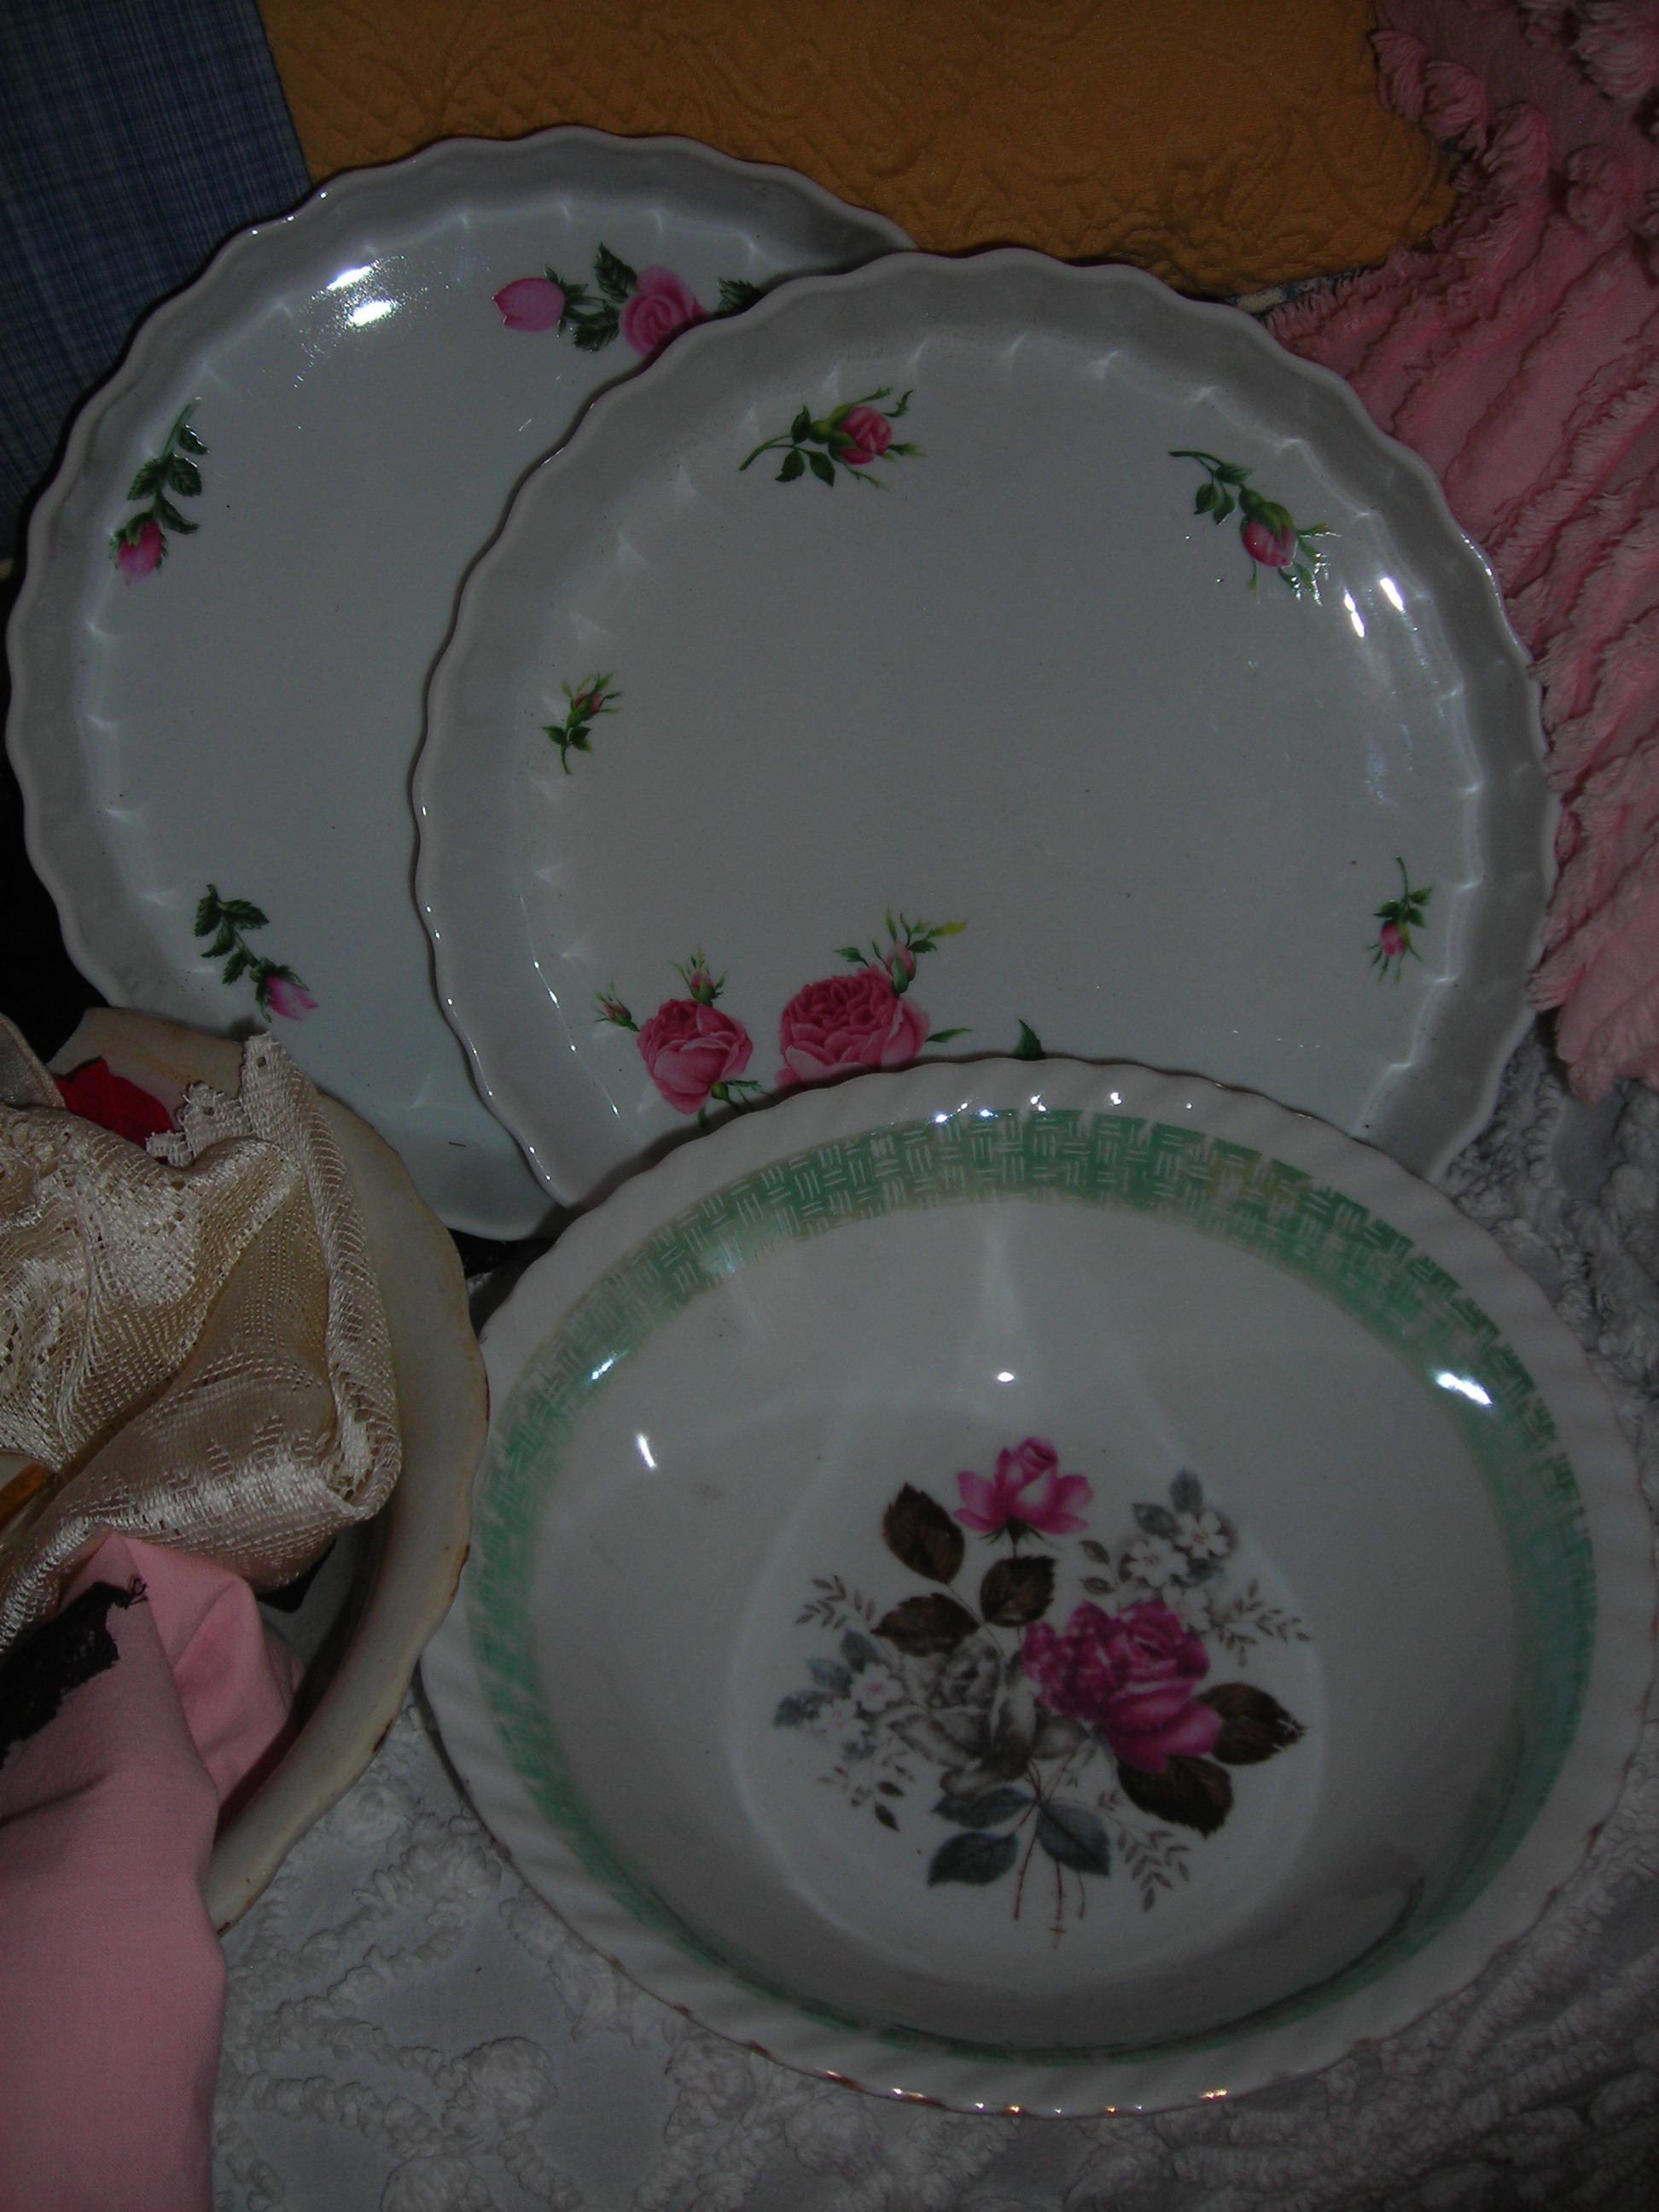 rose bowl with rose pie plates behind